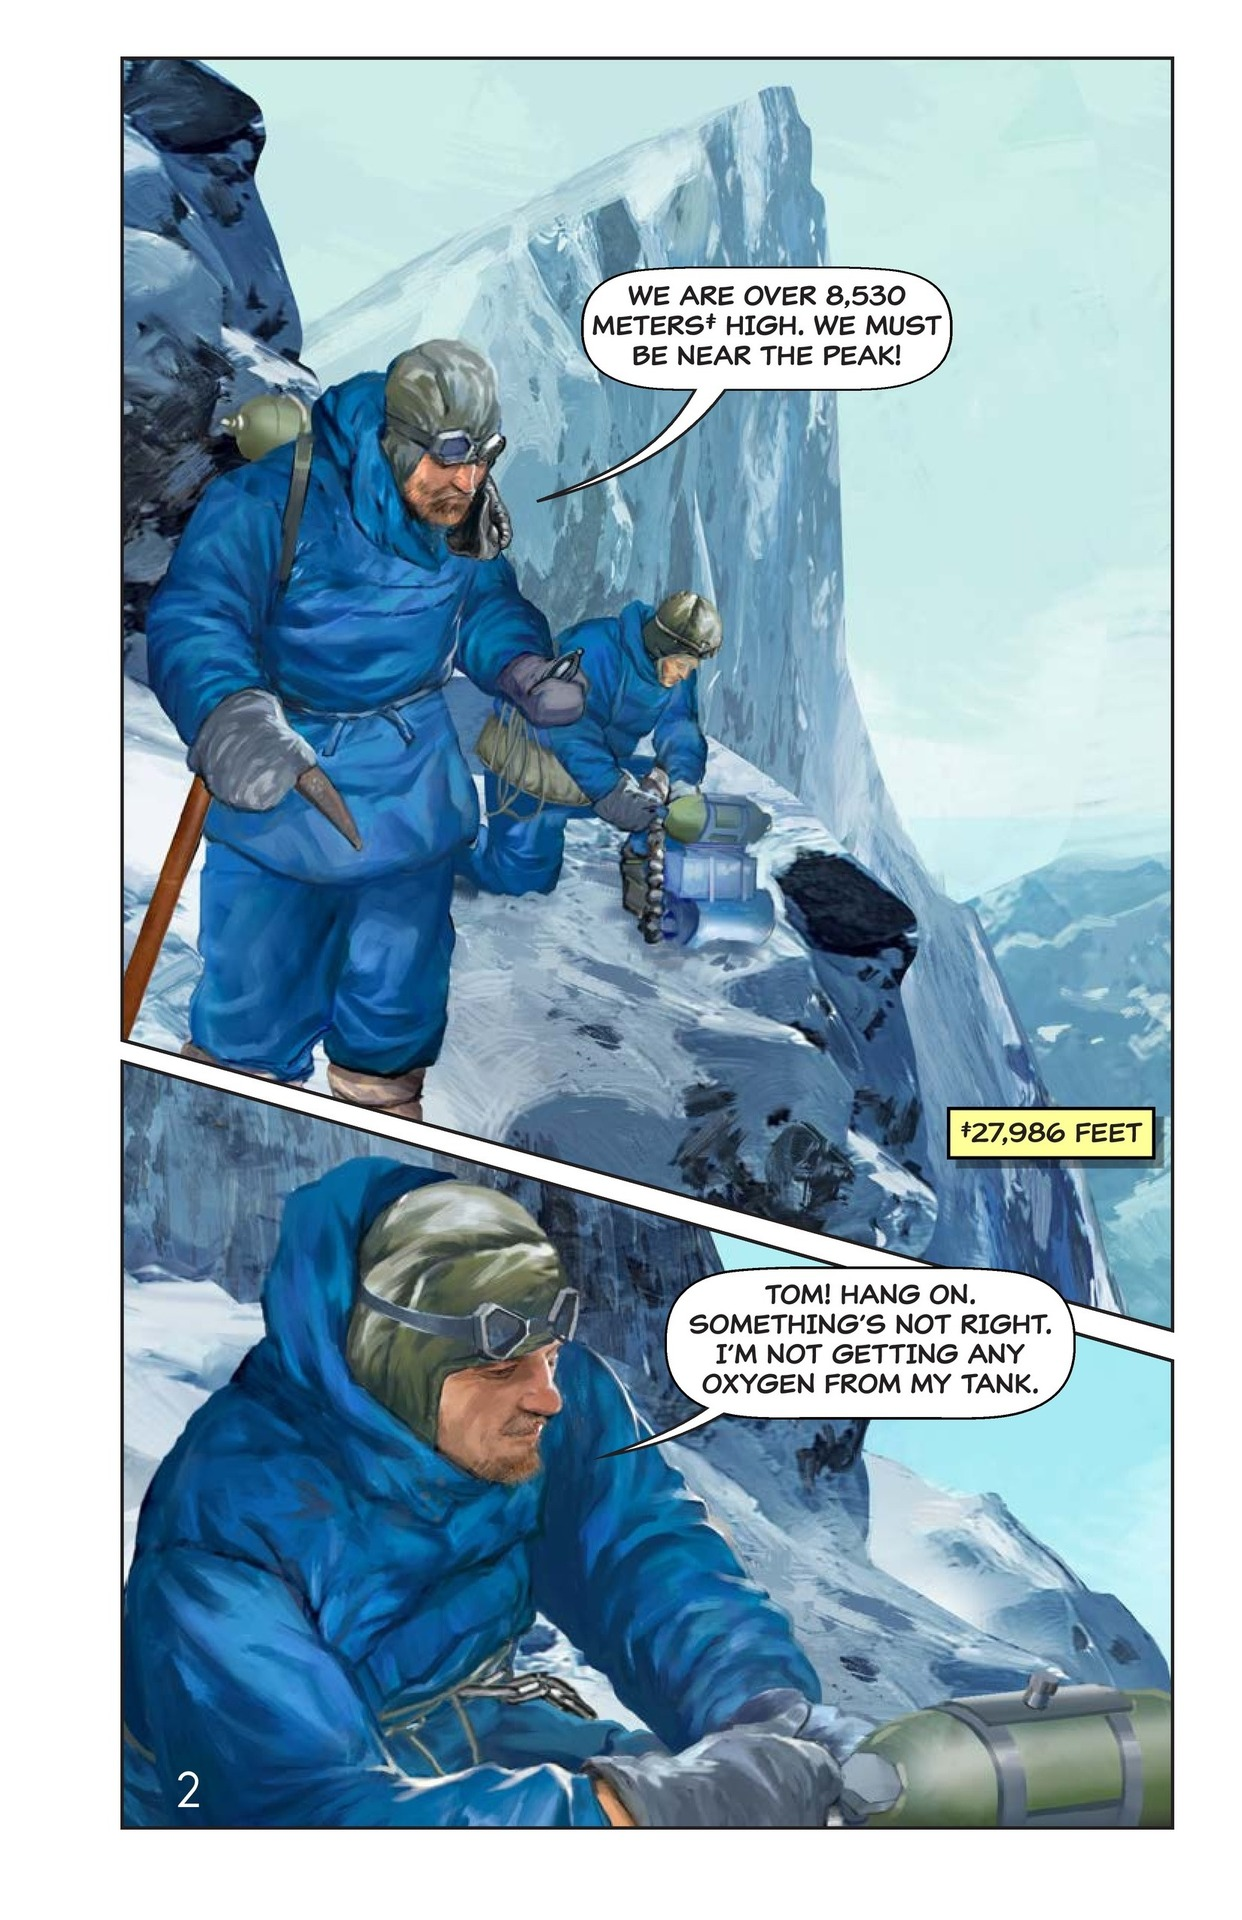 Book Preview For Hilary, Norgay, and Mount Everest Page 3